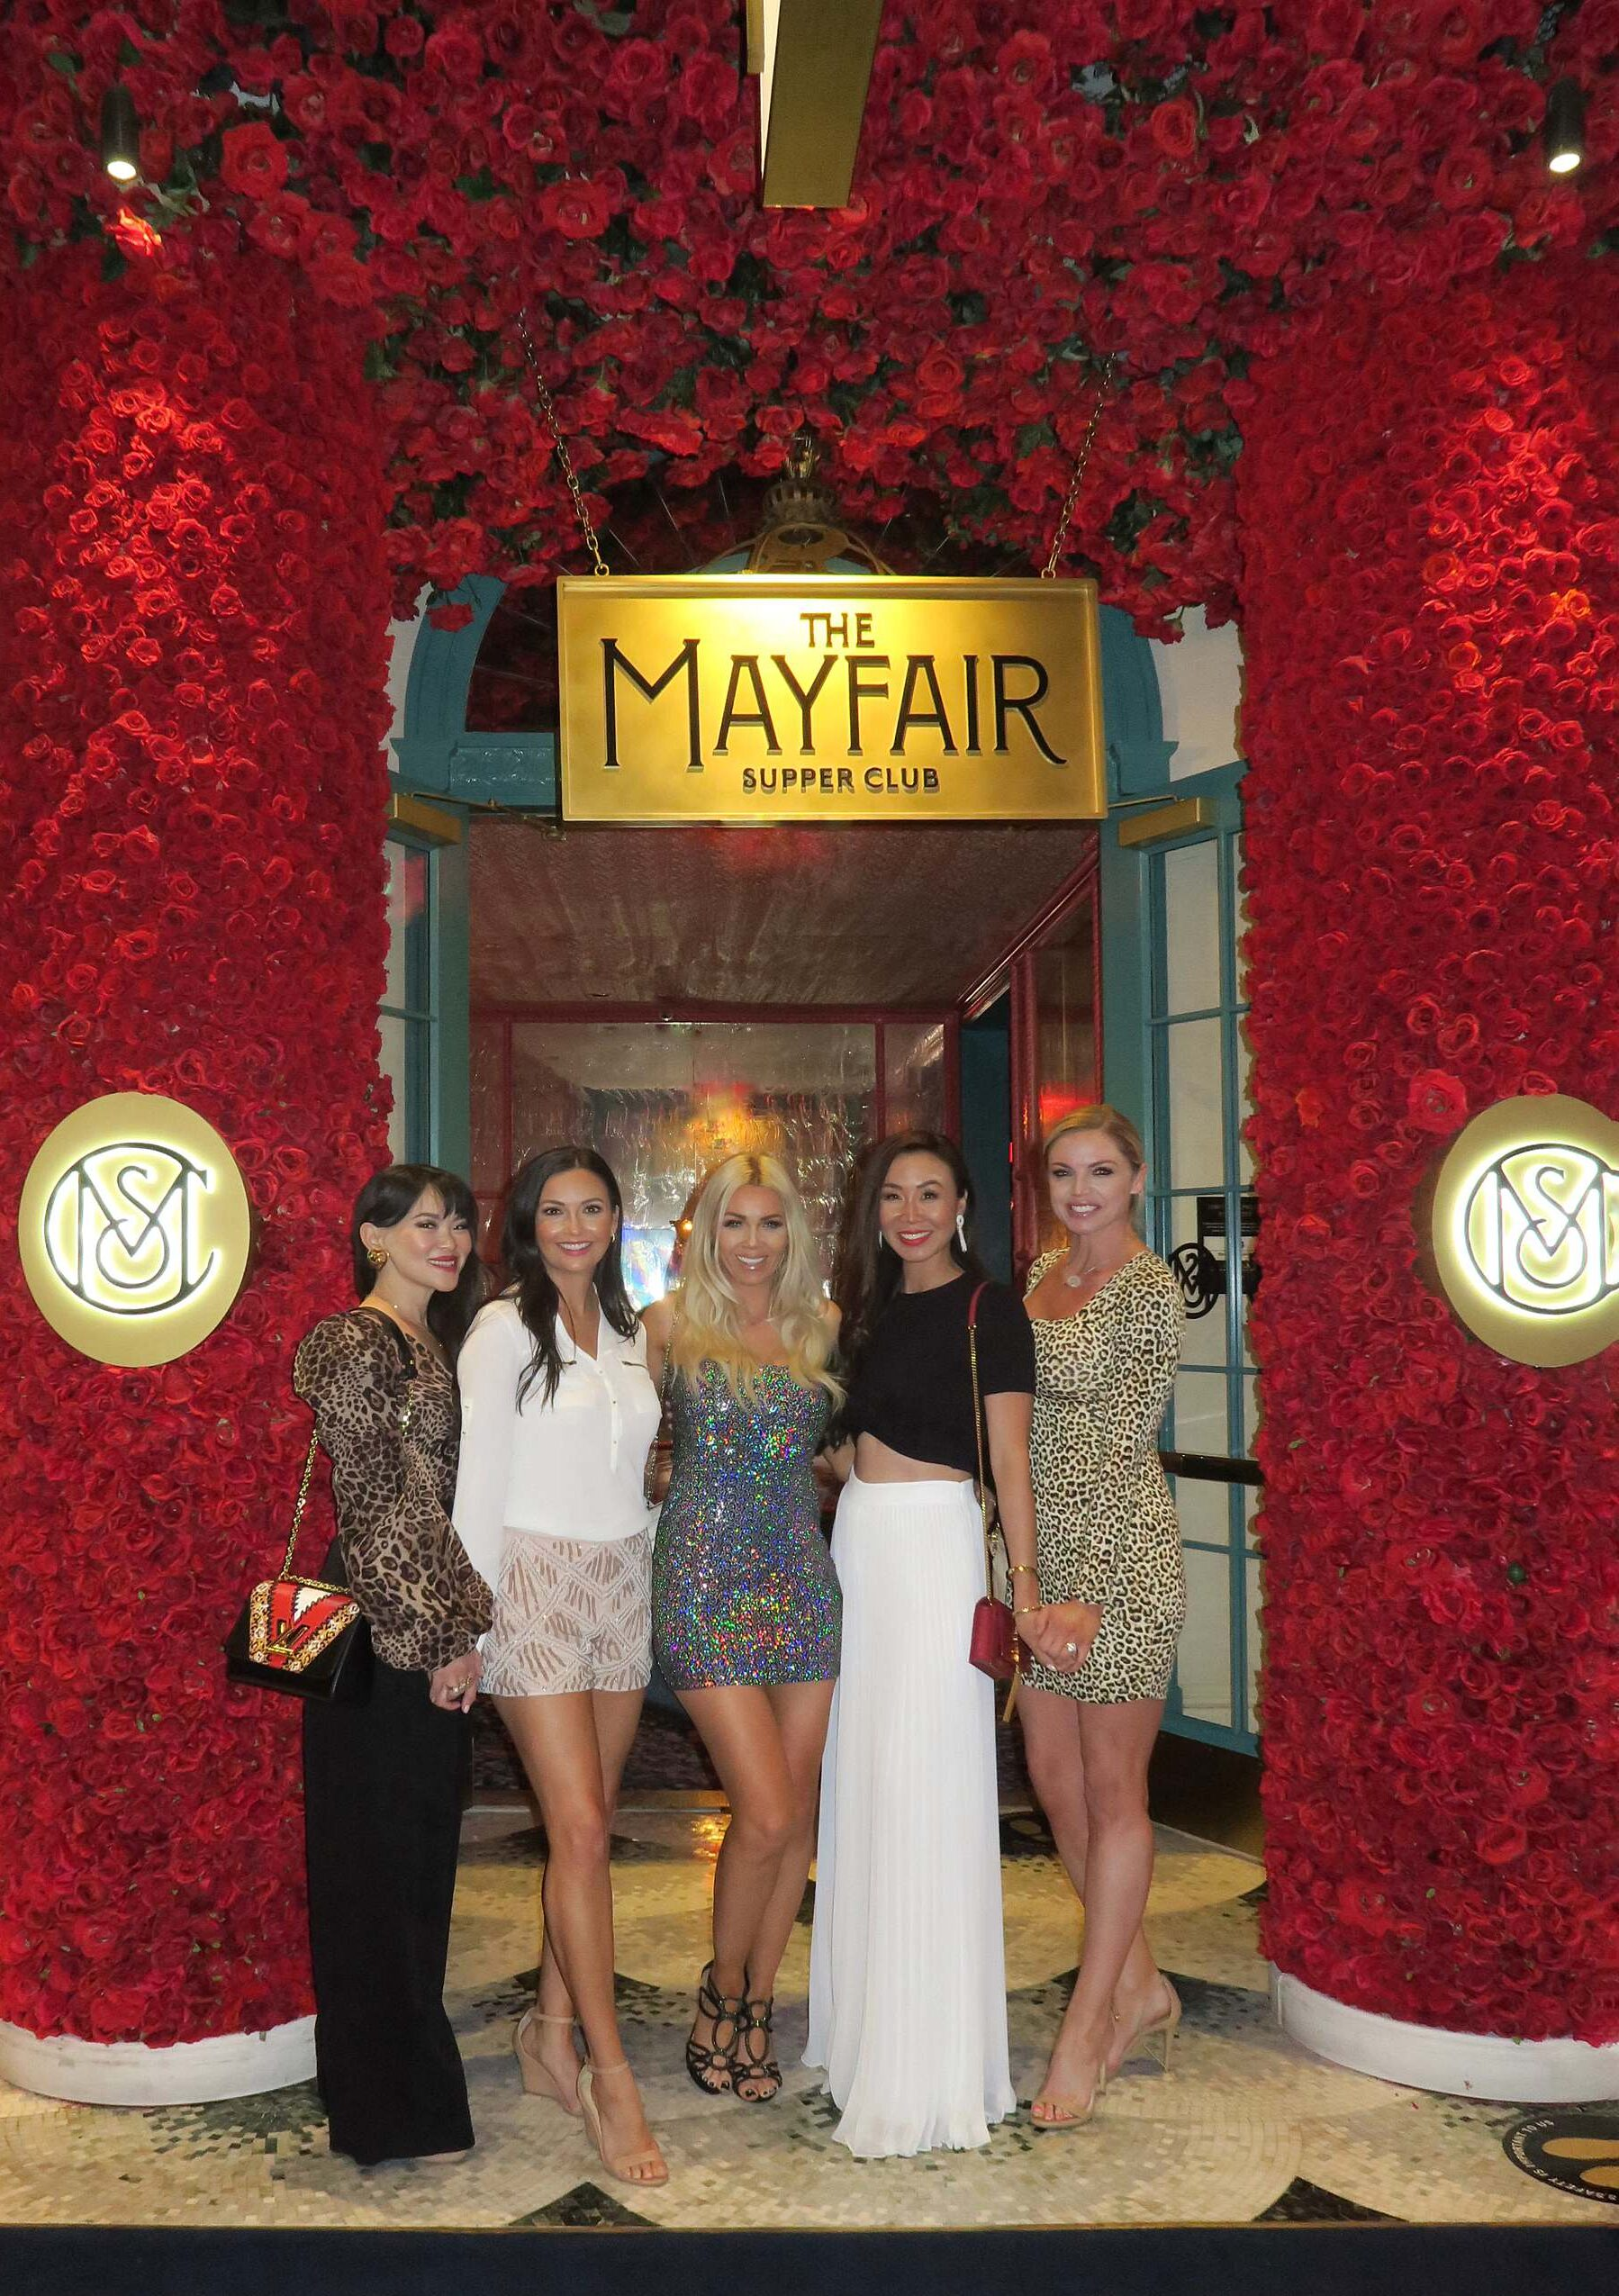 Mayfair at Bellagio restaurant things to do in vegas where to eat